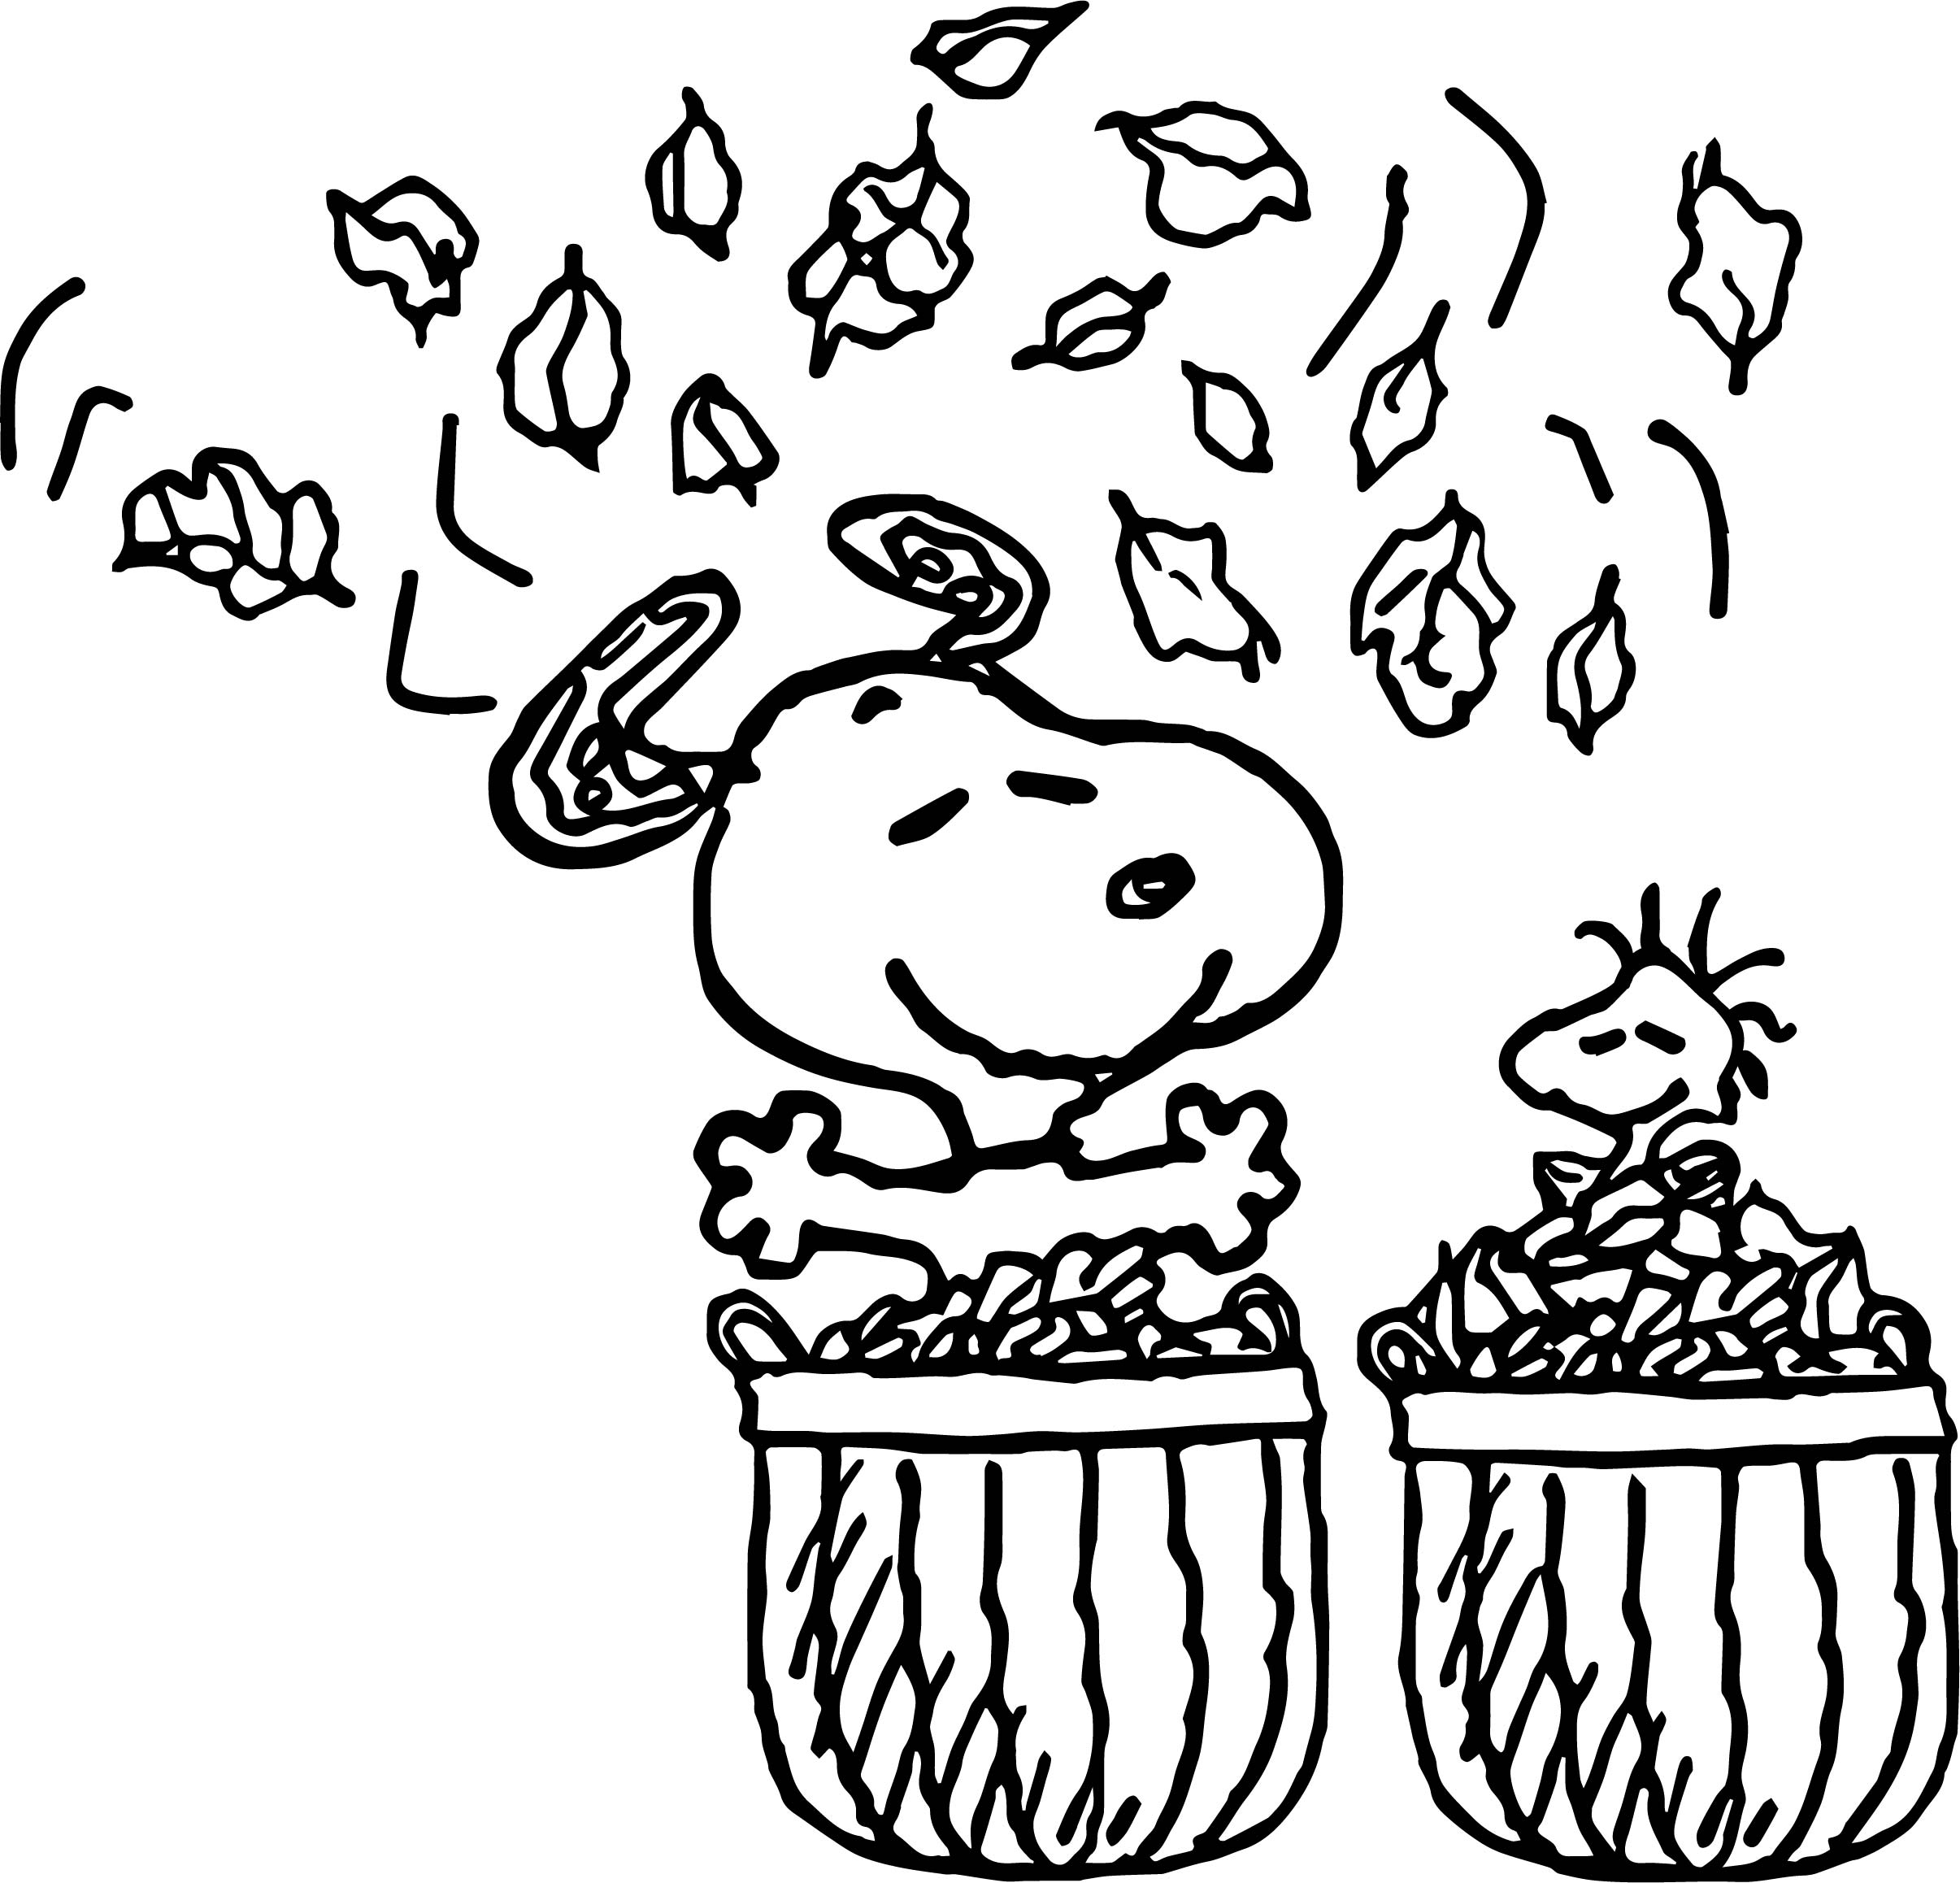 Coloring page autumn - Snoopy Autumn Coloring Page